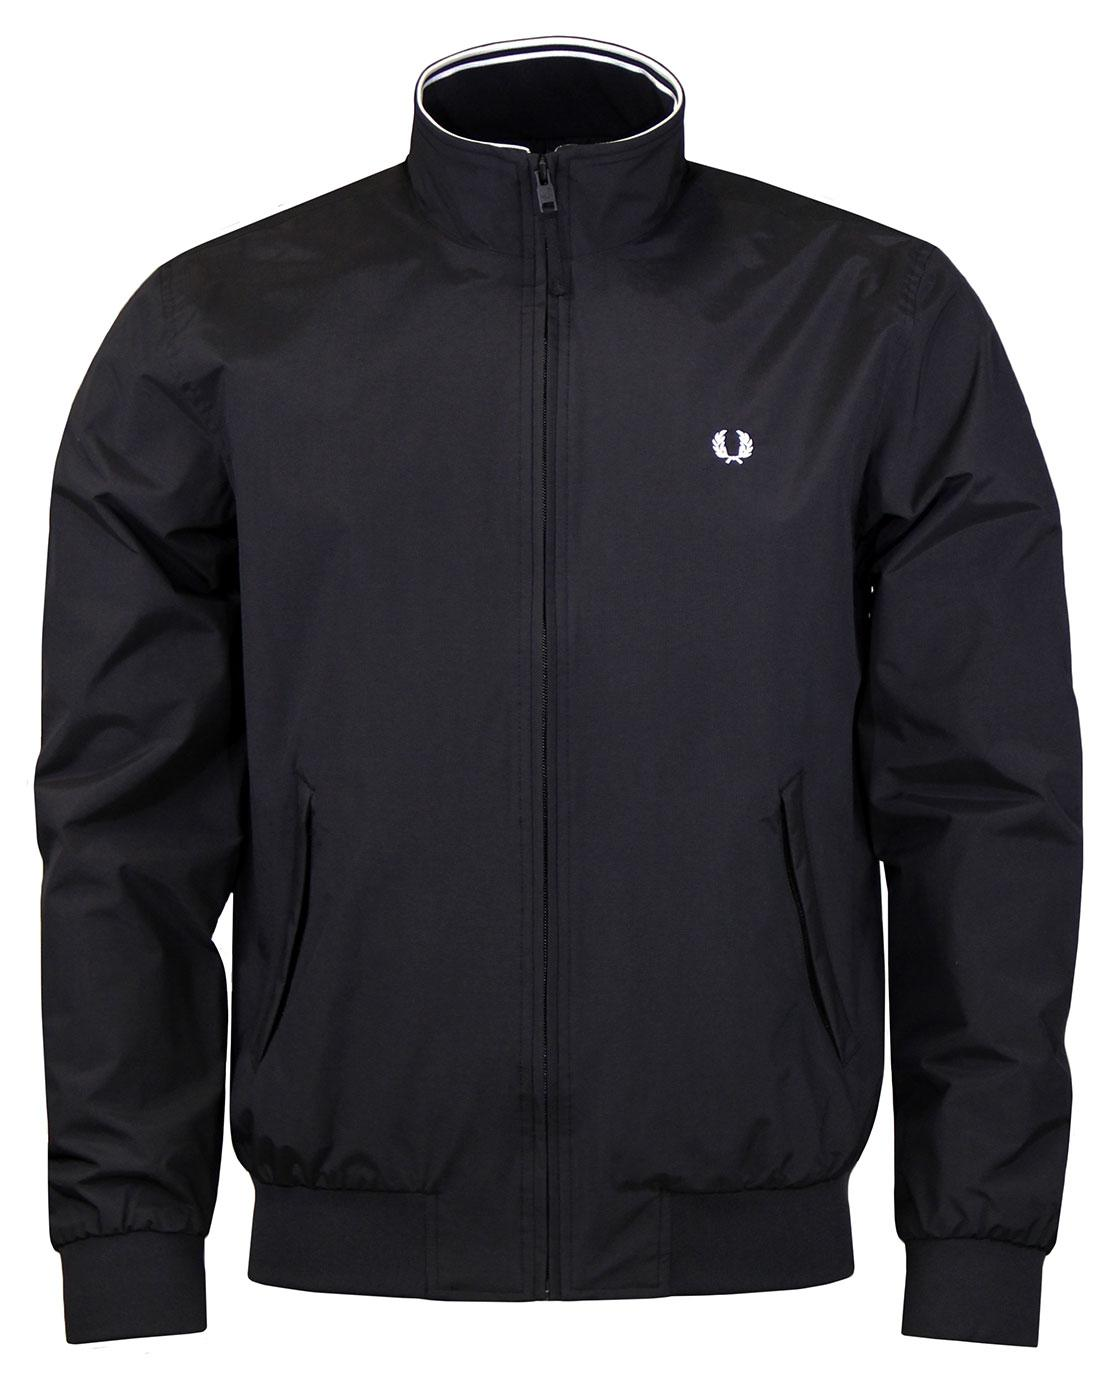 FRED PERRY J2505 Bentham Jacket Black